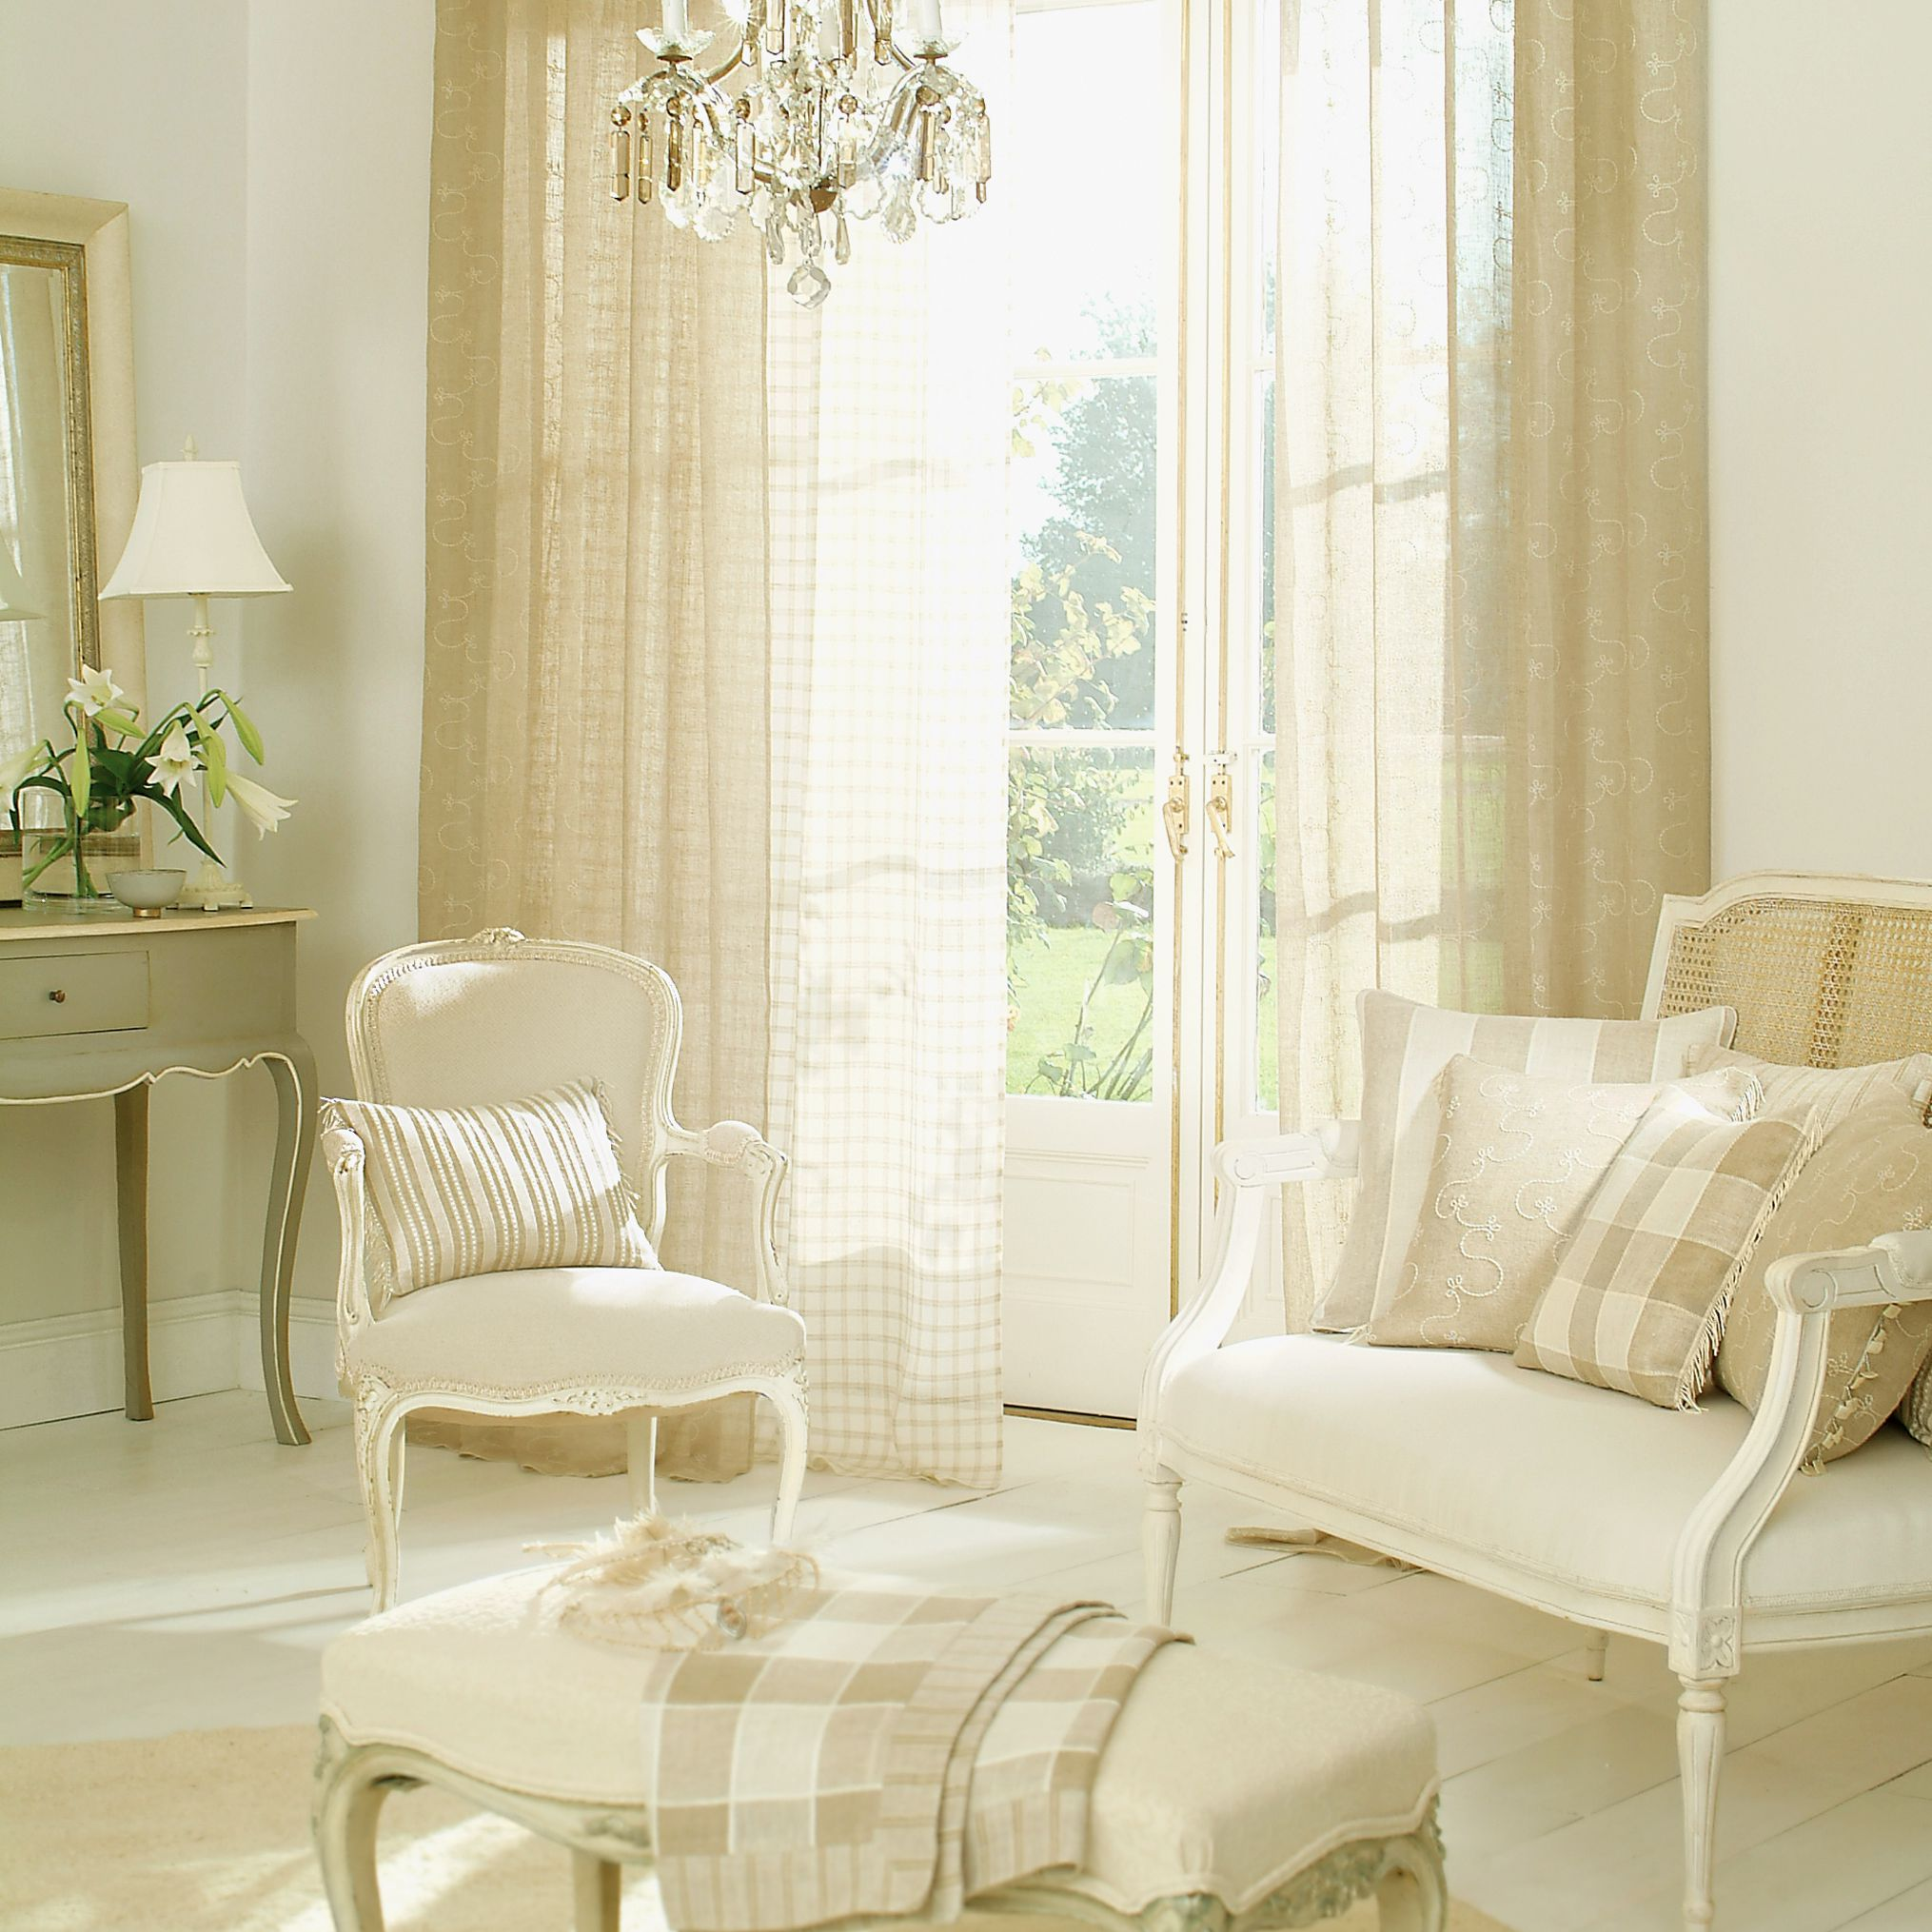 16+ Sheer Curtain Ideas For Living Room Pictures